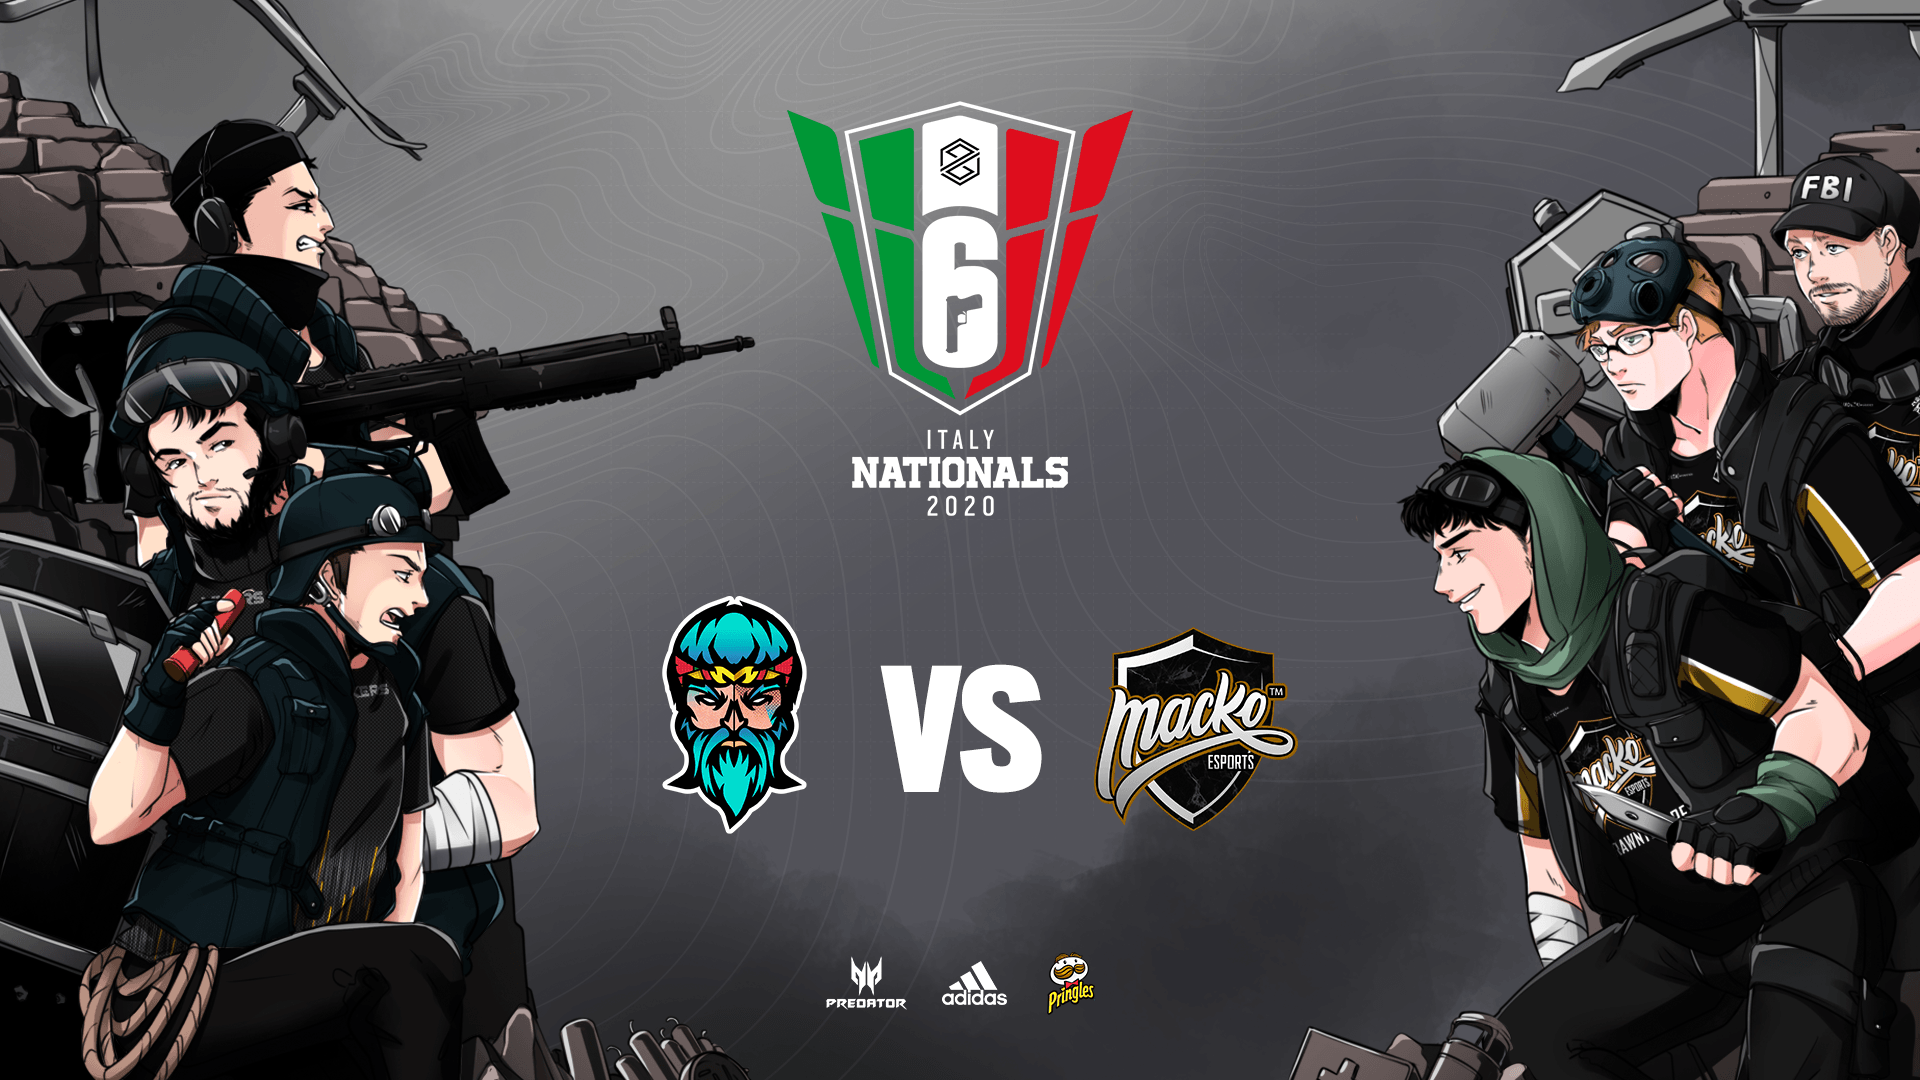 Rainbow Six Siege PG Nationals: Ecco quando si terrà la finalissima del Winter Split 2020